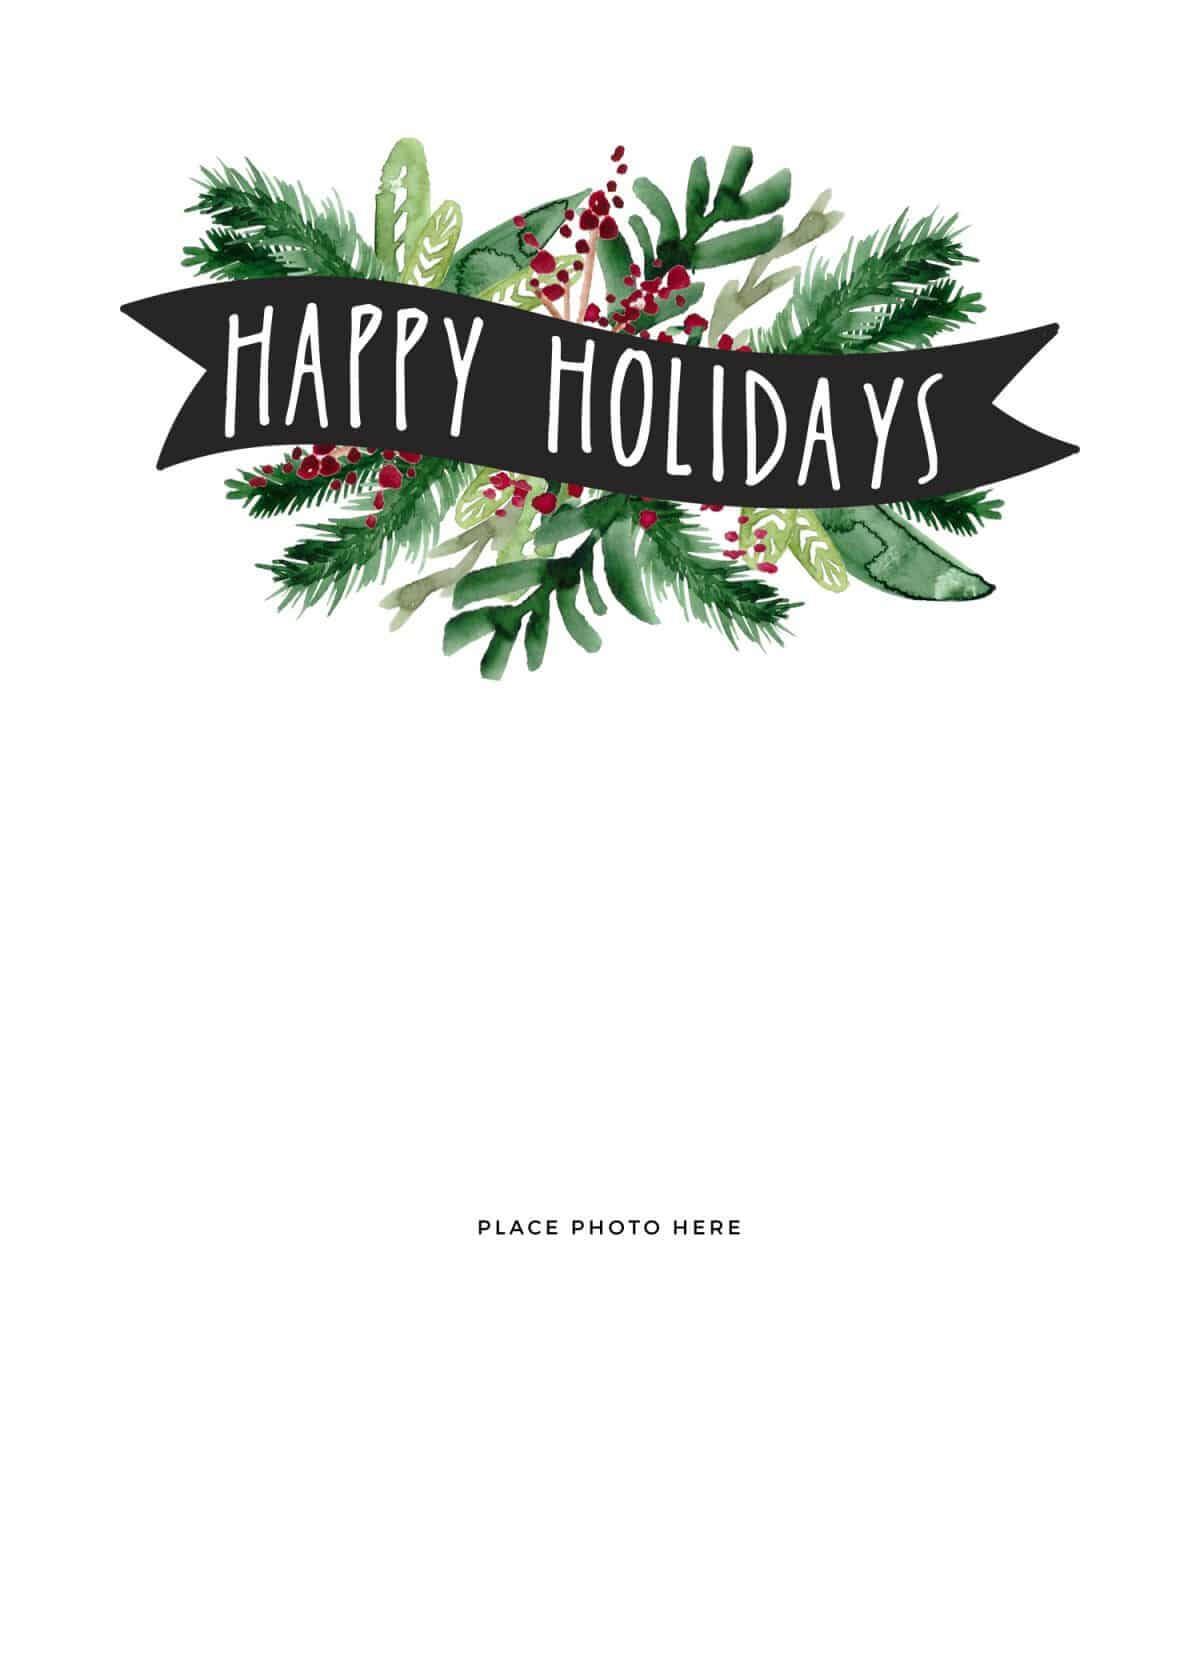 Make Your Own Photo Christmas Cards (For Free!) - Somewhat for Happy Holidays Card Template